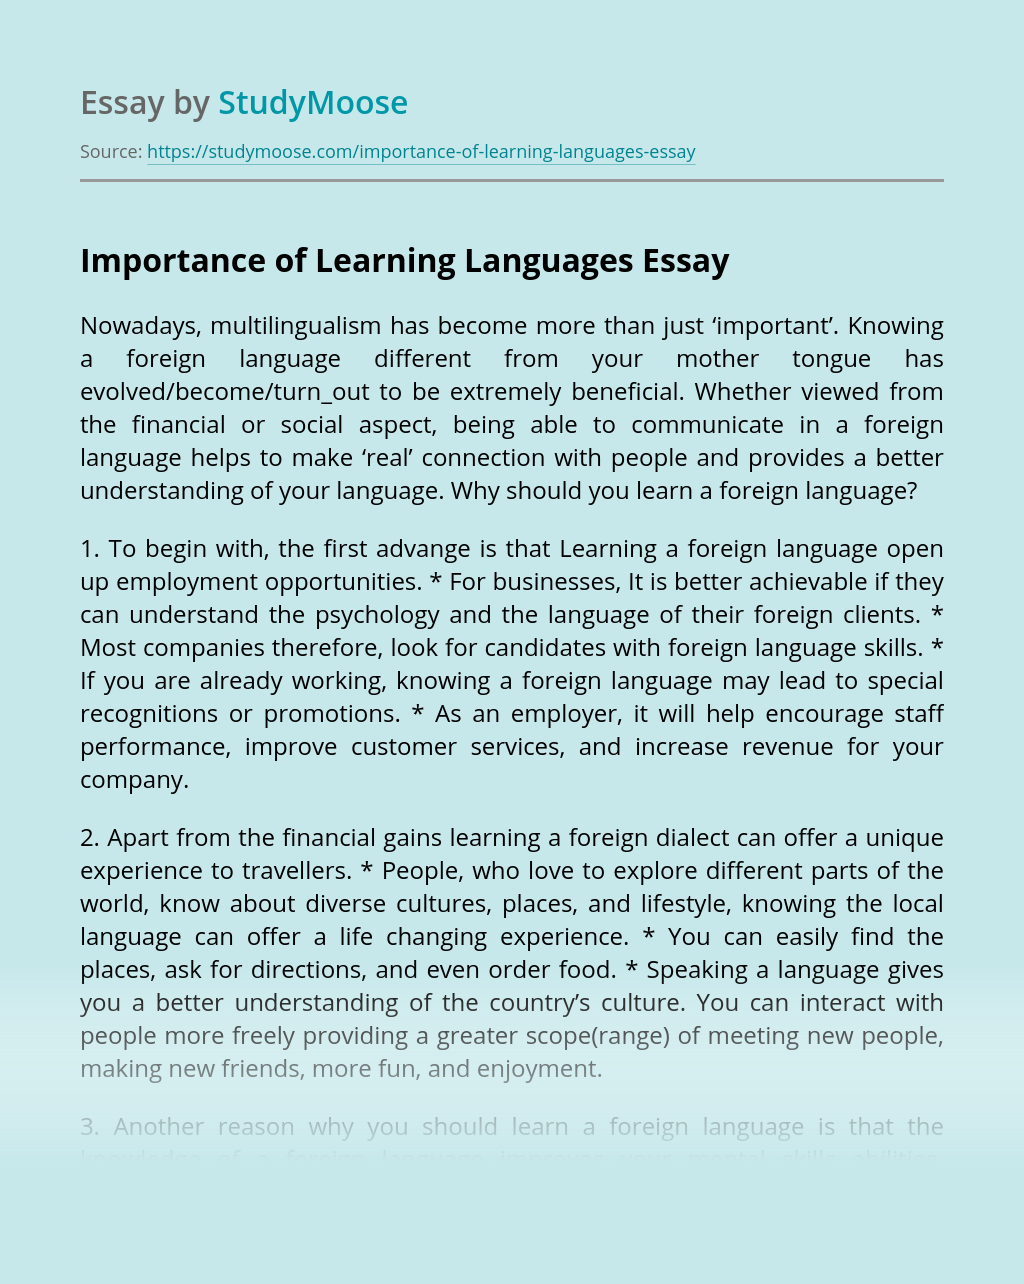 Importance of Learning Languages